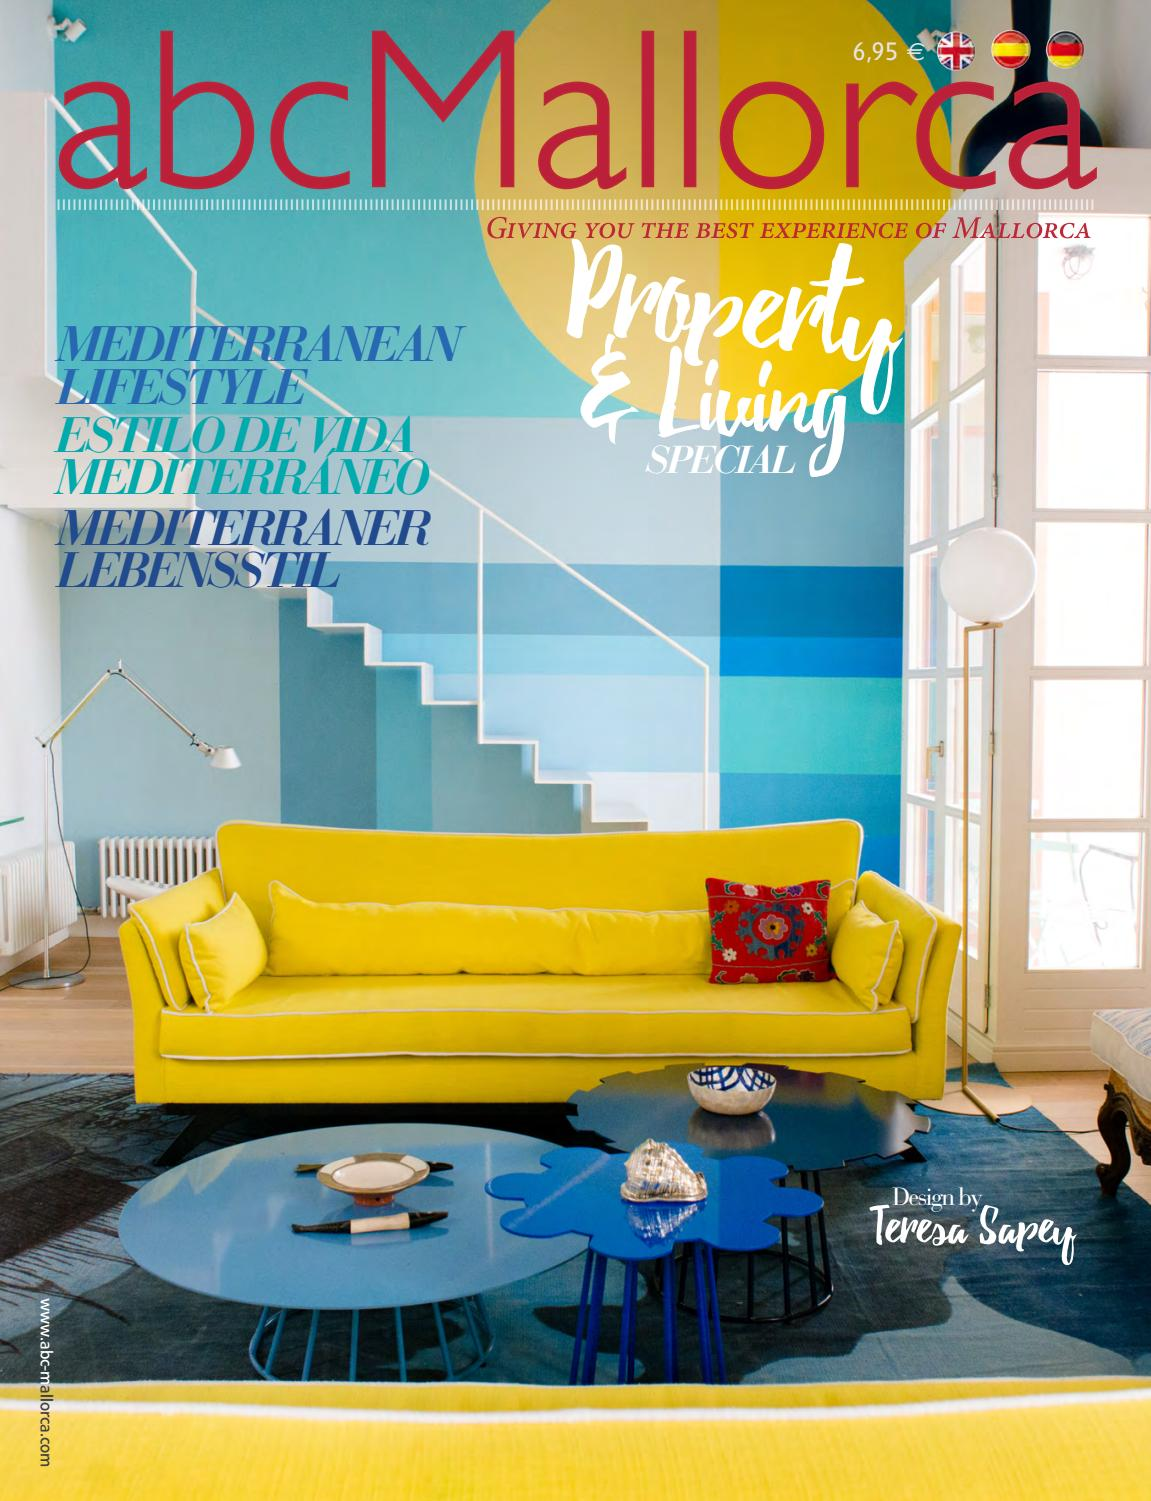 117th AbcMallorca Property U0026 Living Special 2018 By AbcMallorca   Issuu